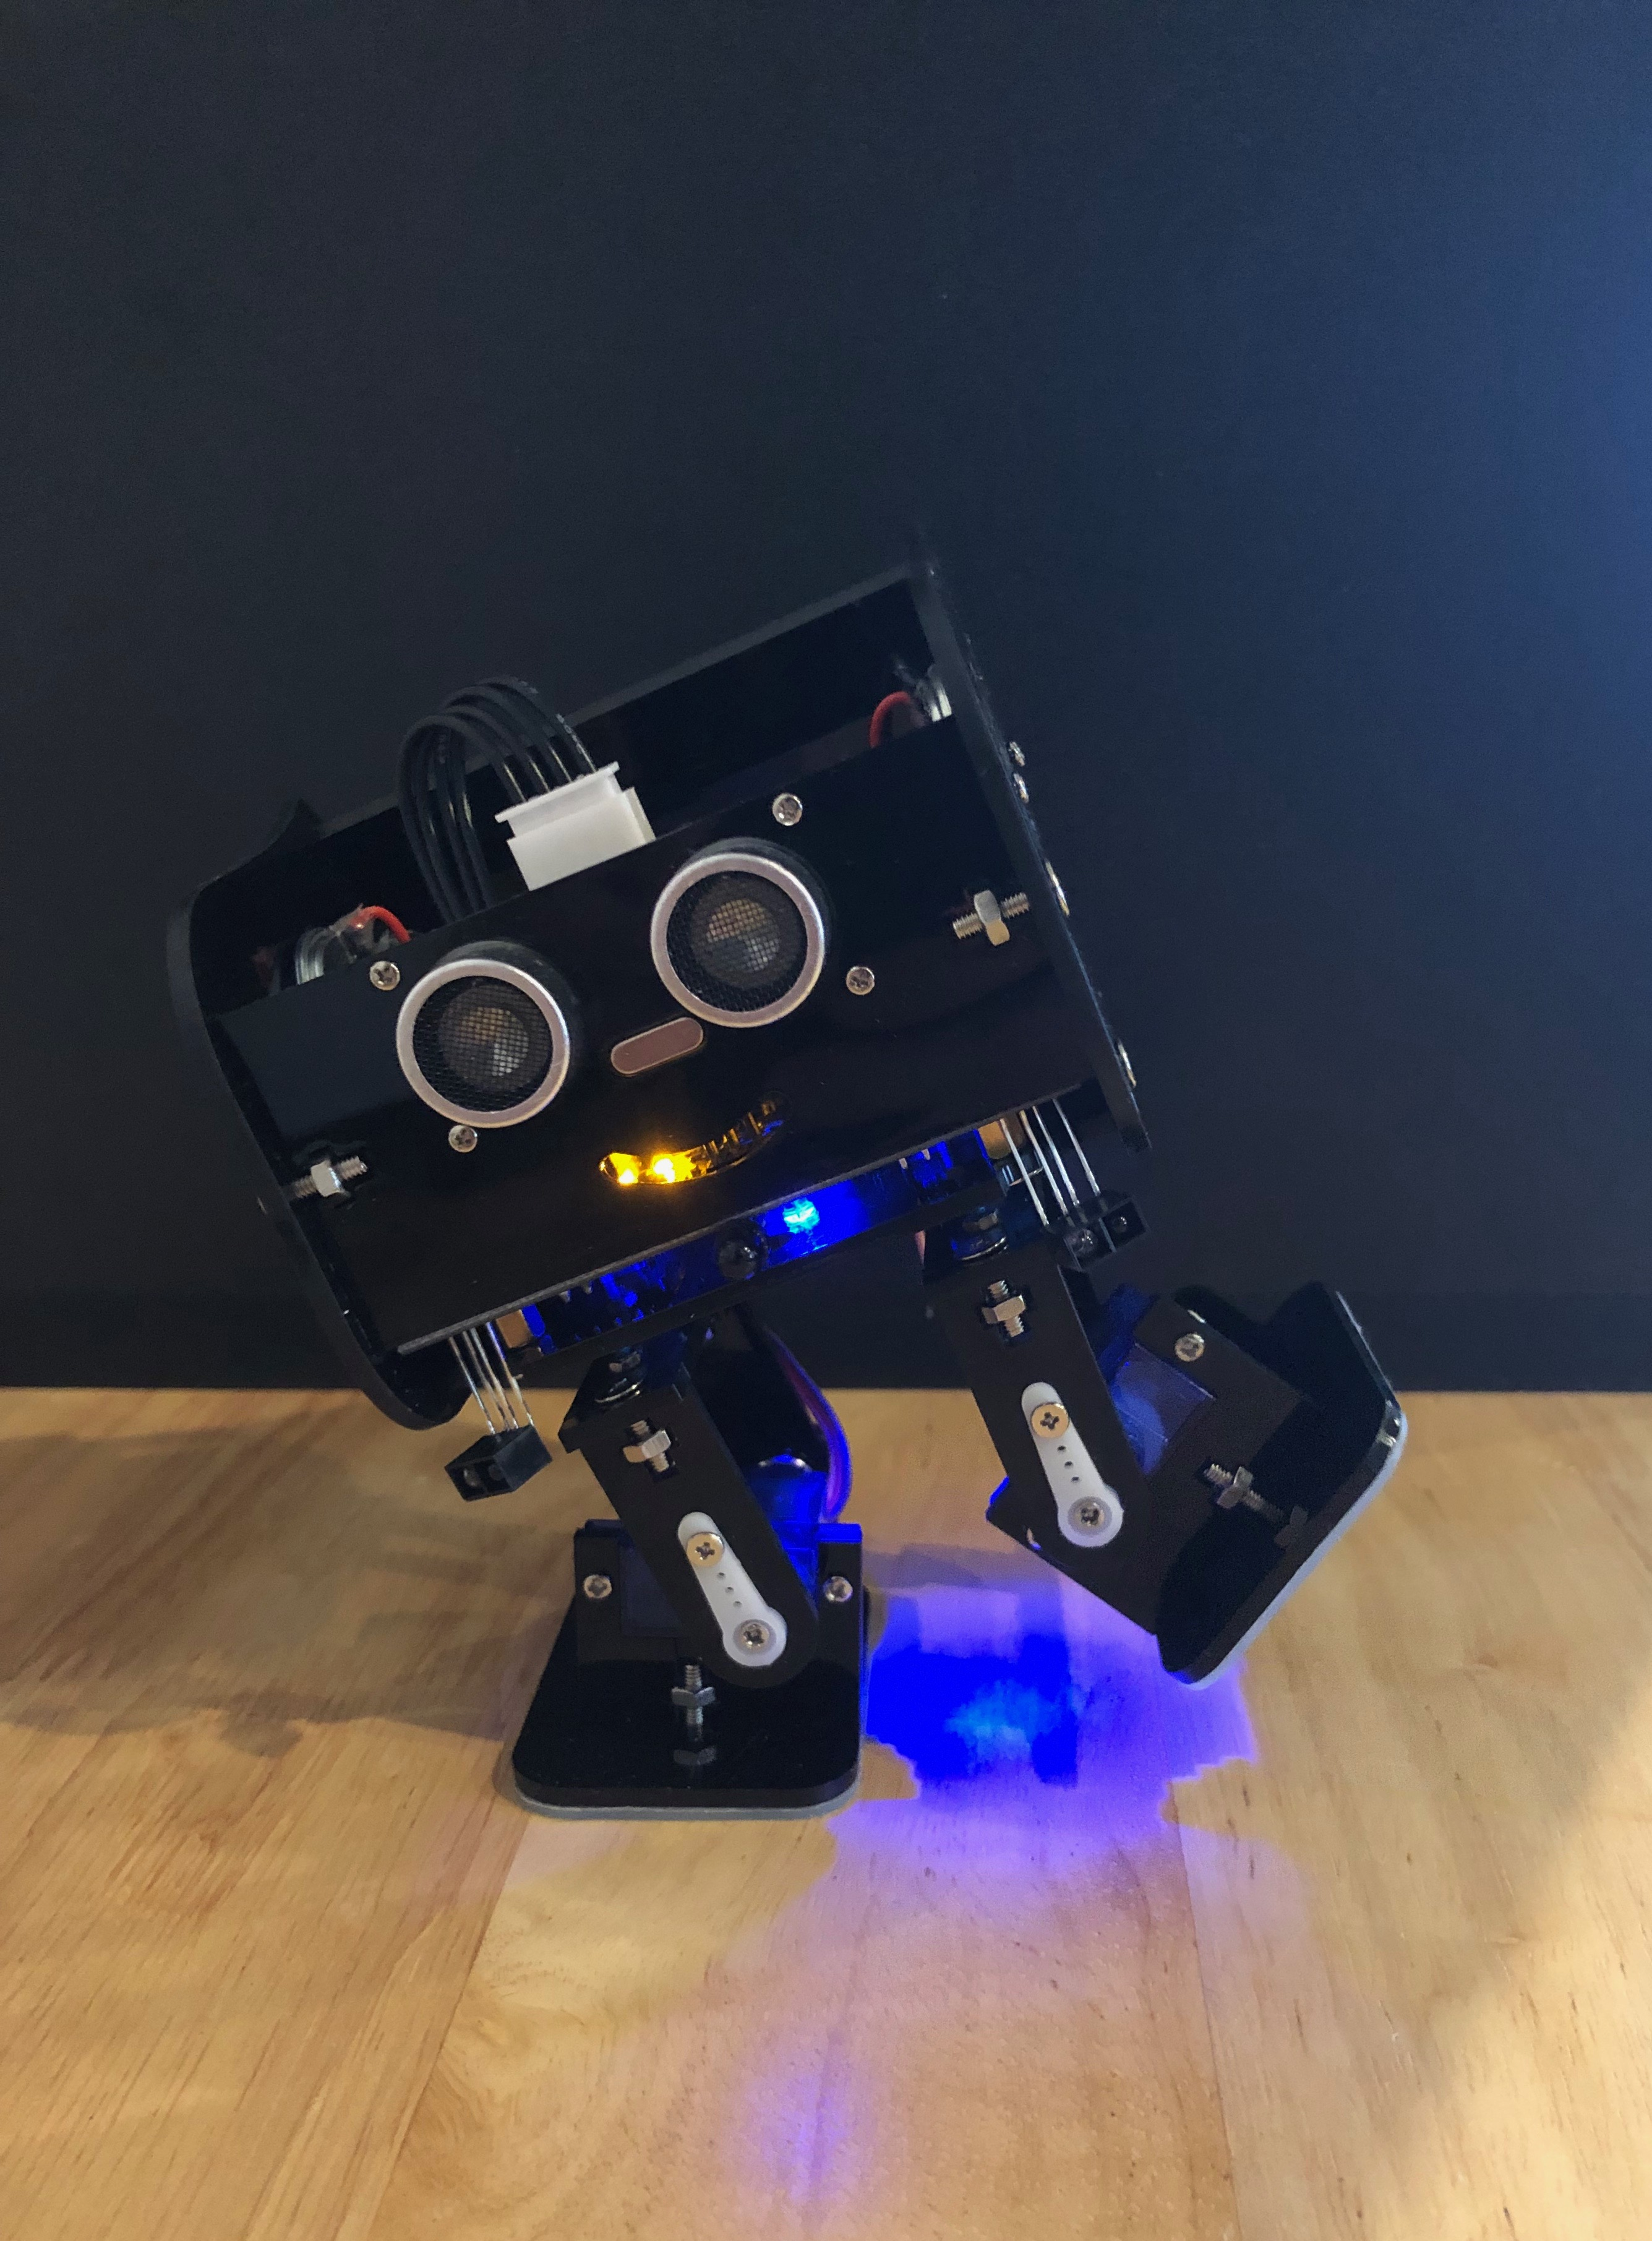 A Black, bipedal Arduino-based robot dancing